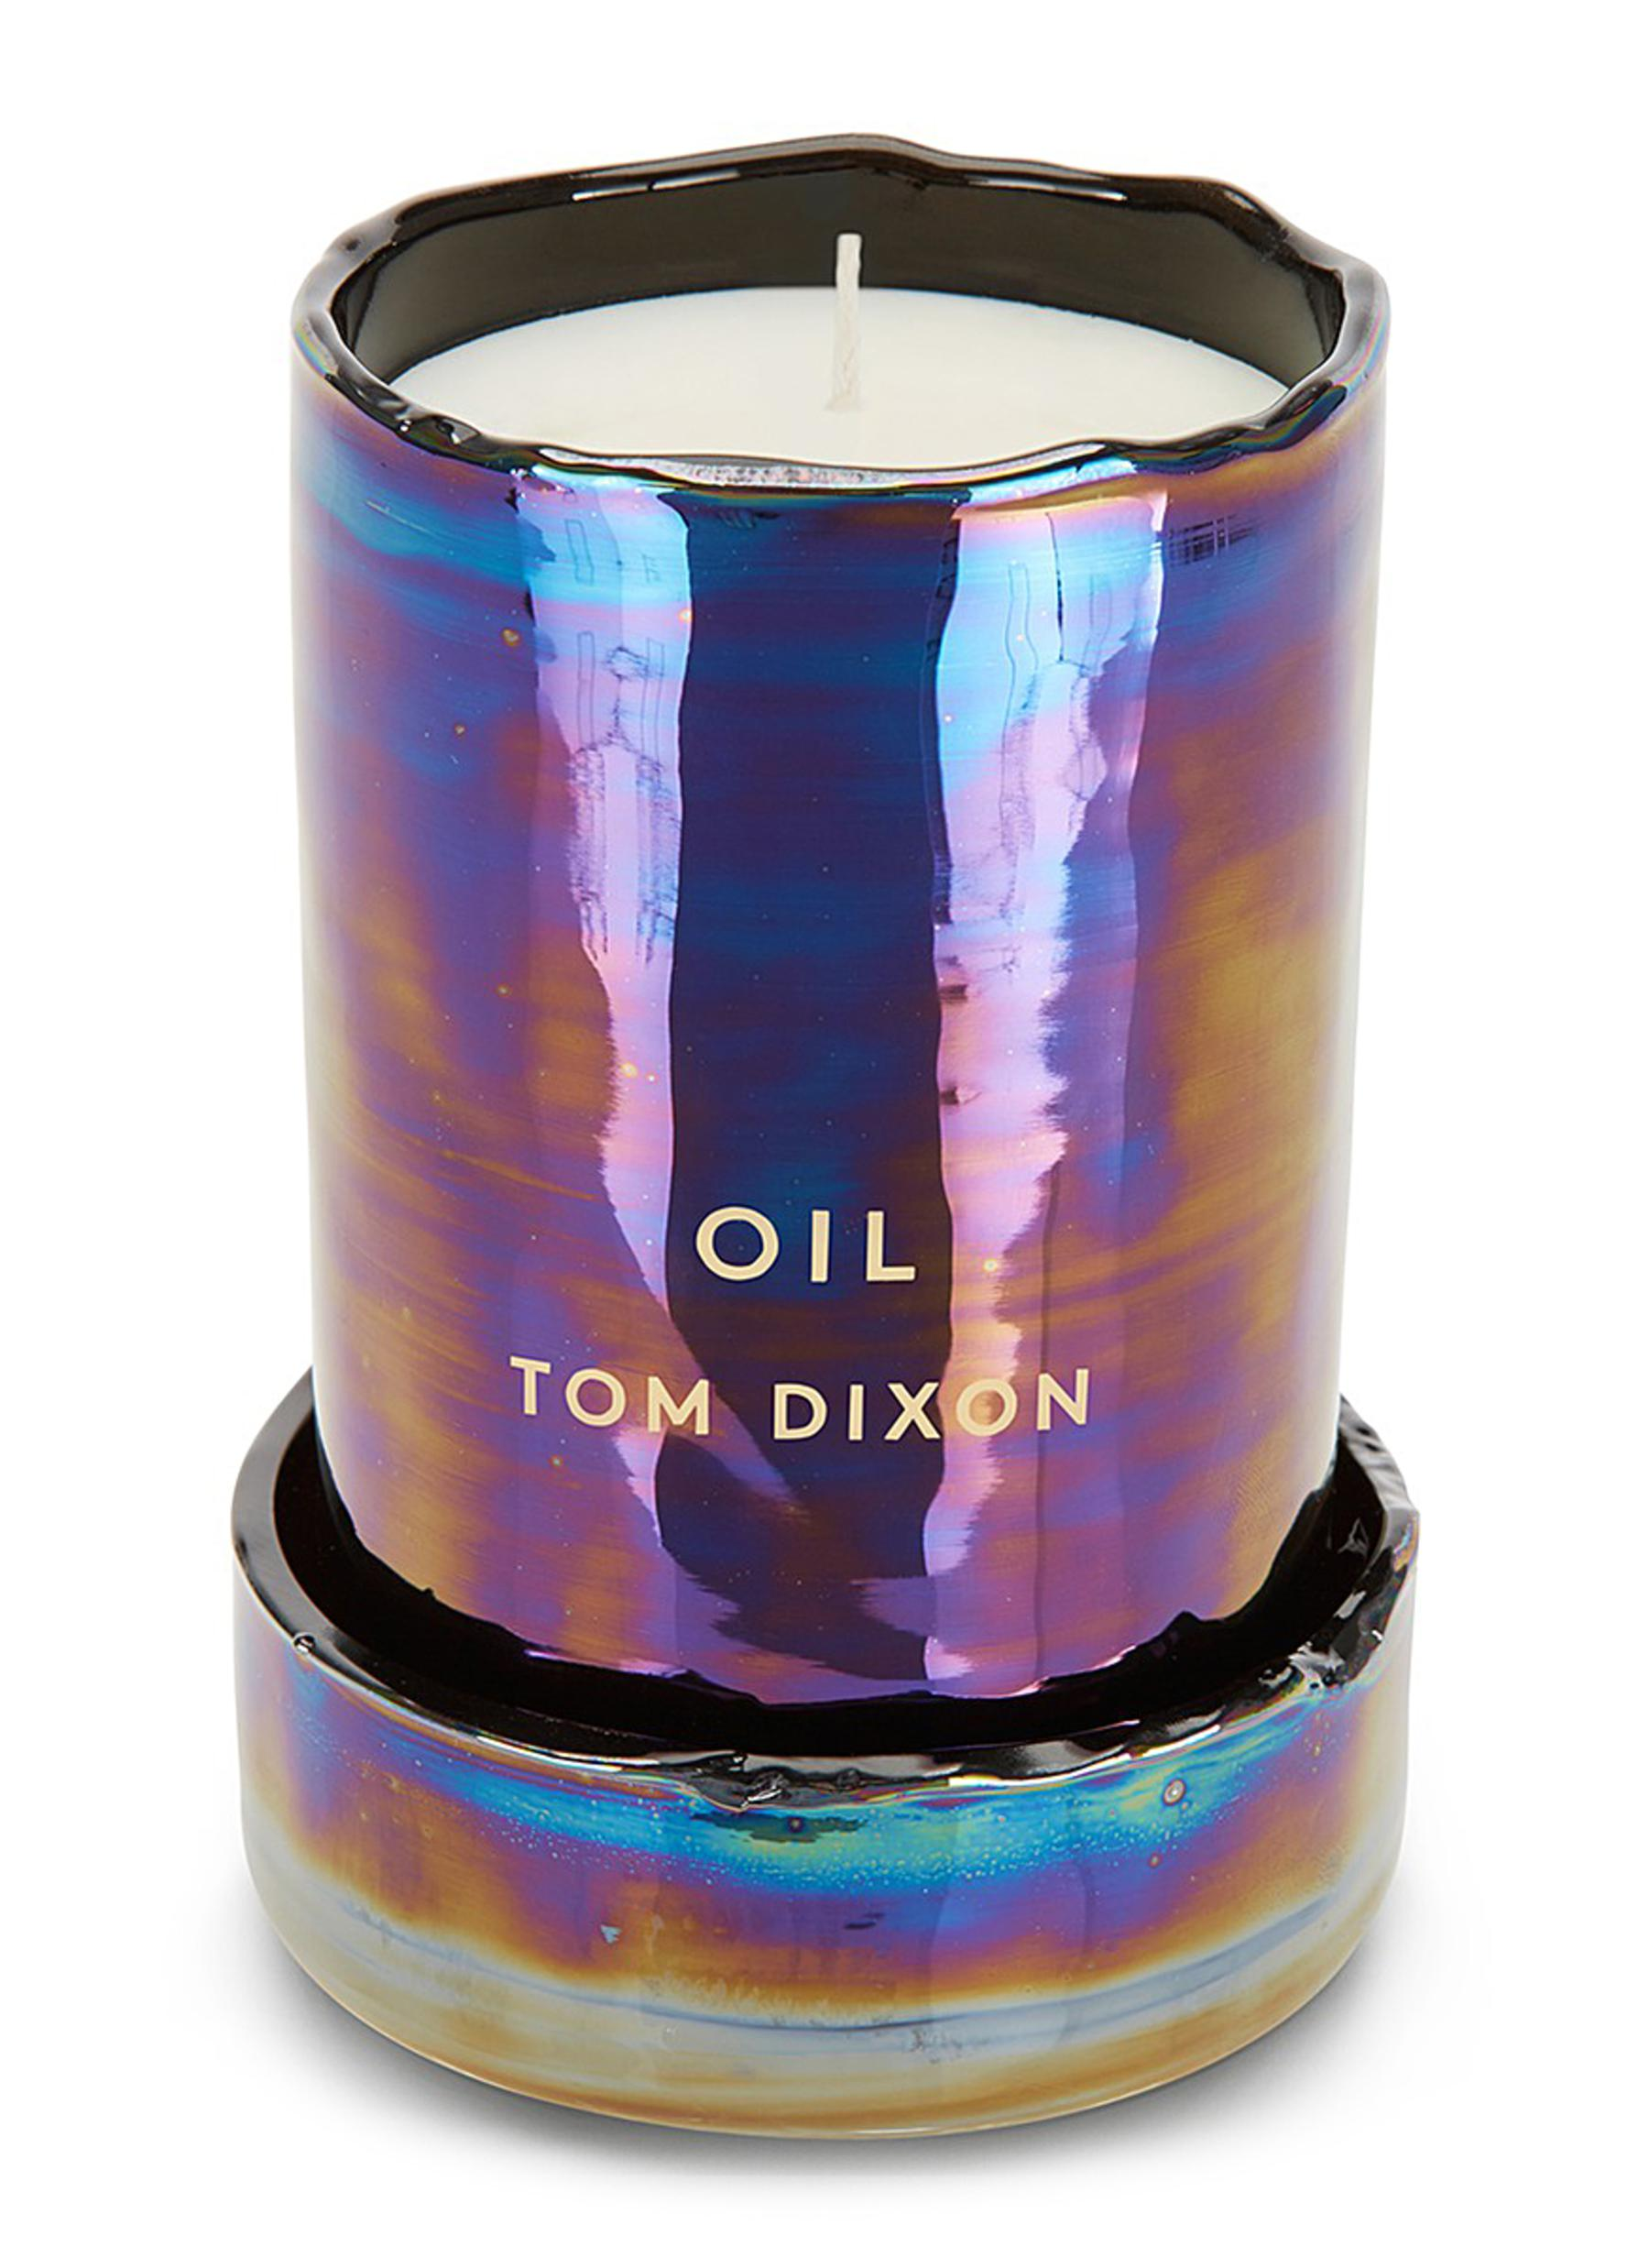 Oil large scented candle by Tom Dixon